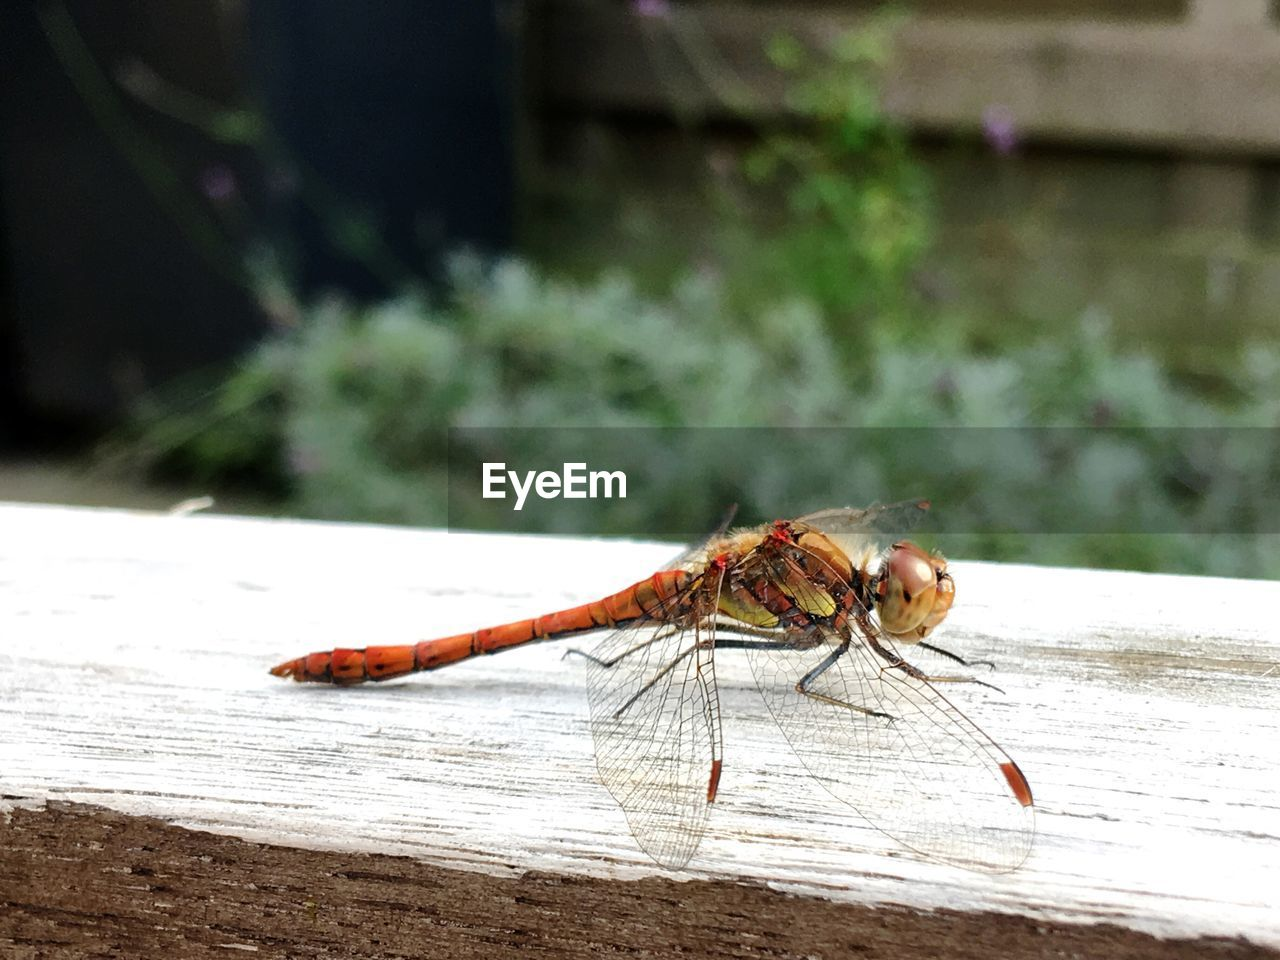 insect, invertebrate, animal themes, one animal, animal, animal wildlife, animals in the wild, close-up, focus on foreground, animal wing, day, no people, outdoors, table, wood - material, nature, animal body part, dragonfly, zoology, selective focus